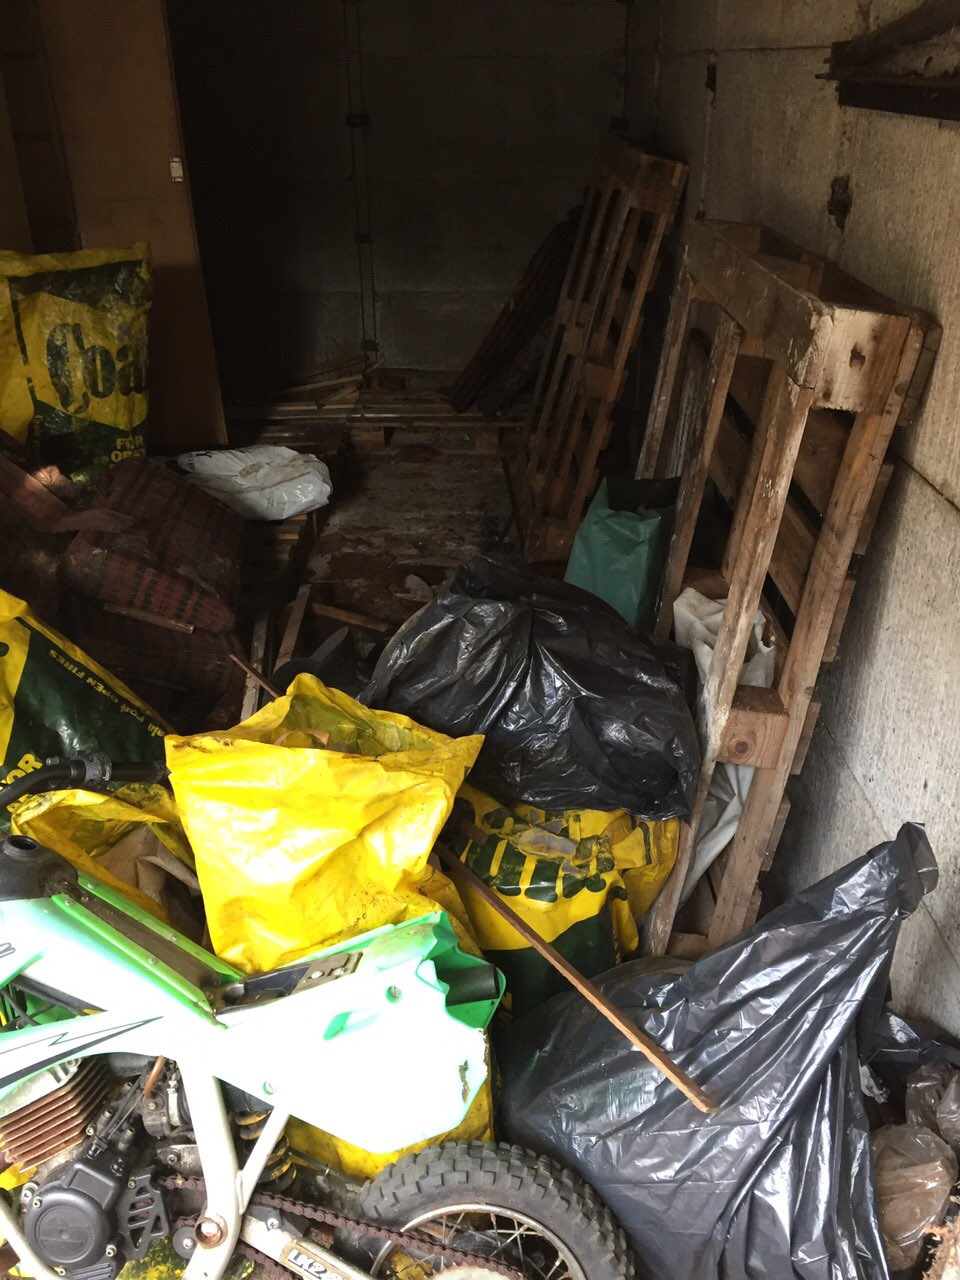 KT2 cellar clearance Coombe